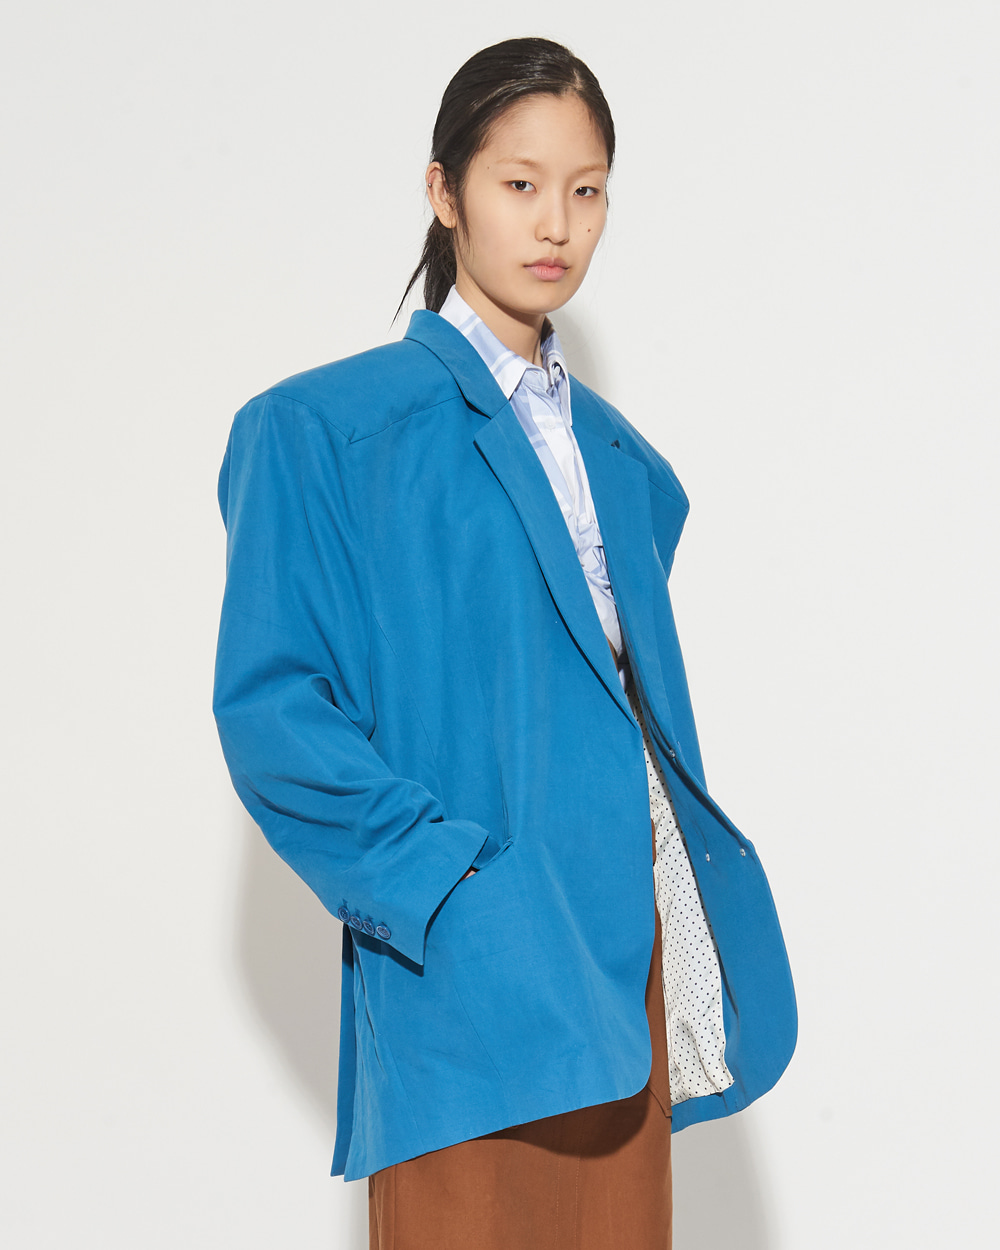 BOX SHOULDER JACKET